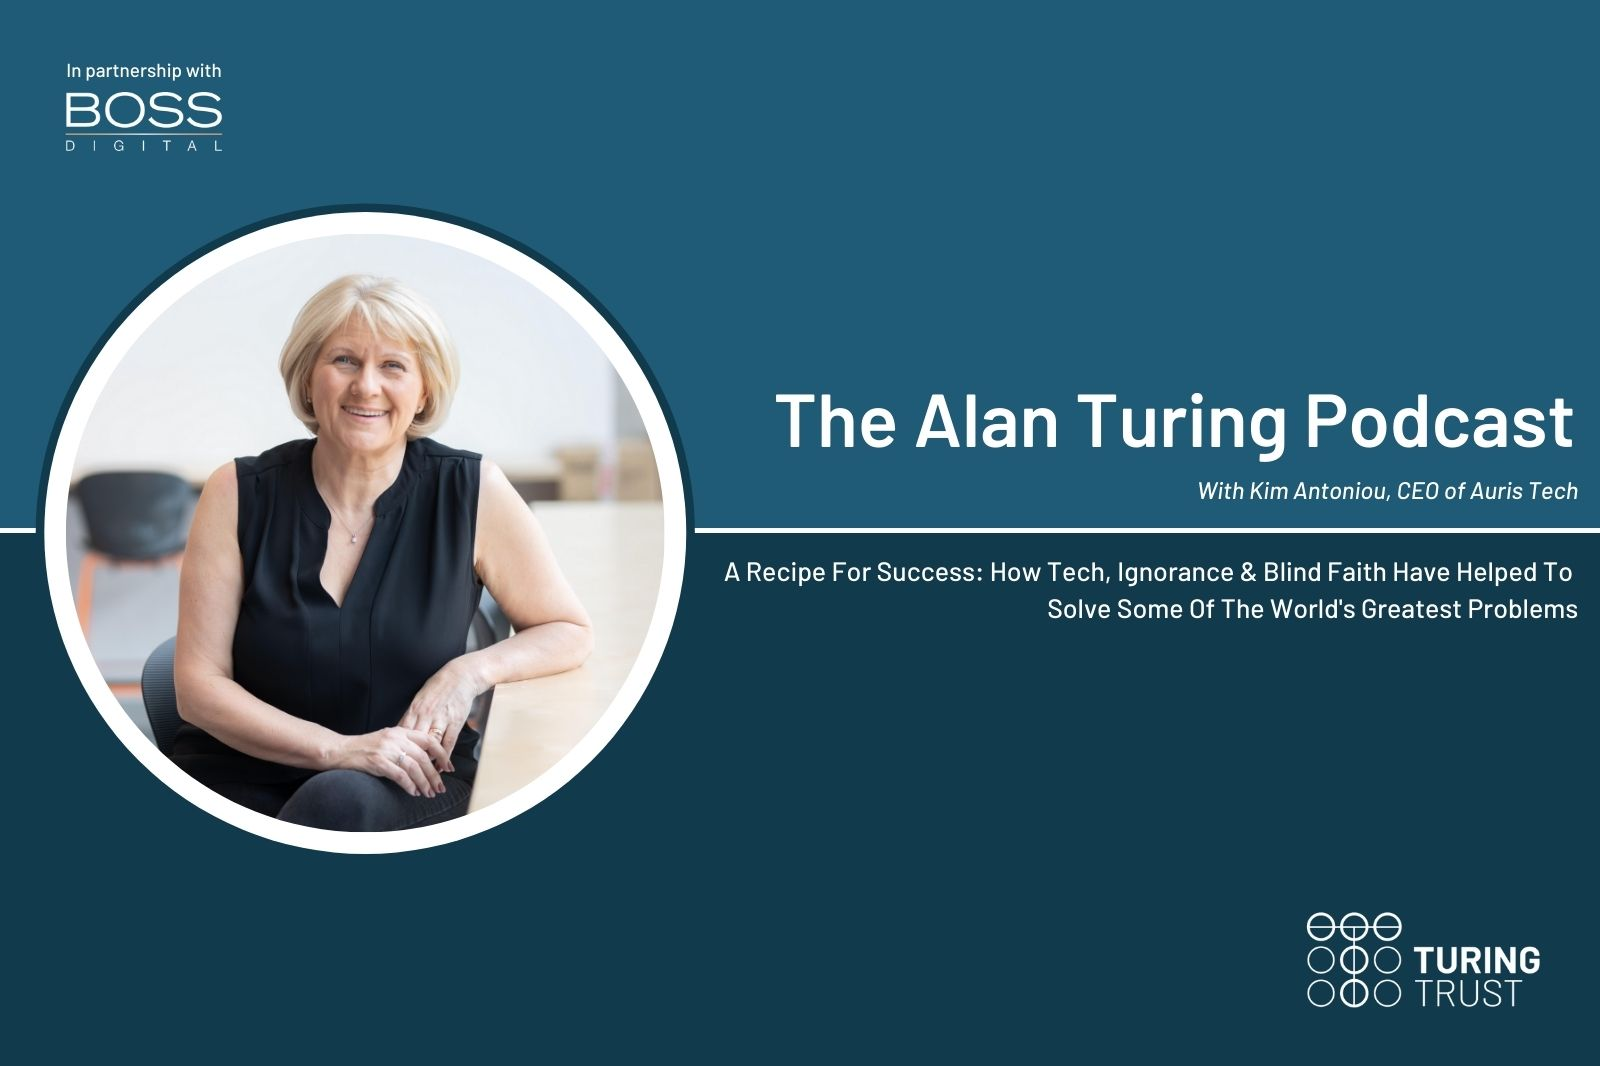 The Alan Turing Podcast: A Recipe For Success – How Tech, Ignorance & Blind Faith Have Helped To Solve Some Of The World's Greatest Problems | Kim Antoniou of Auris Tech